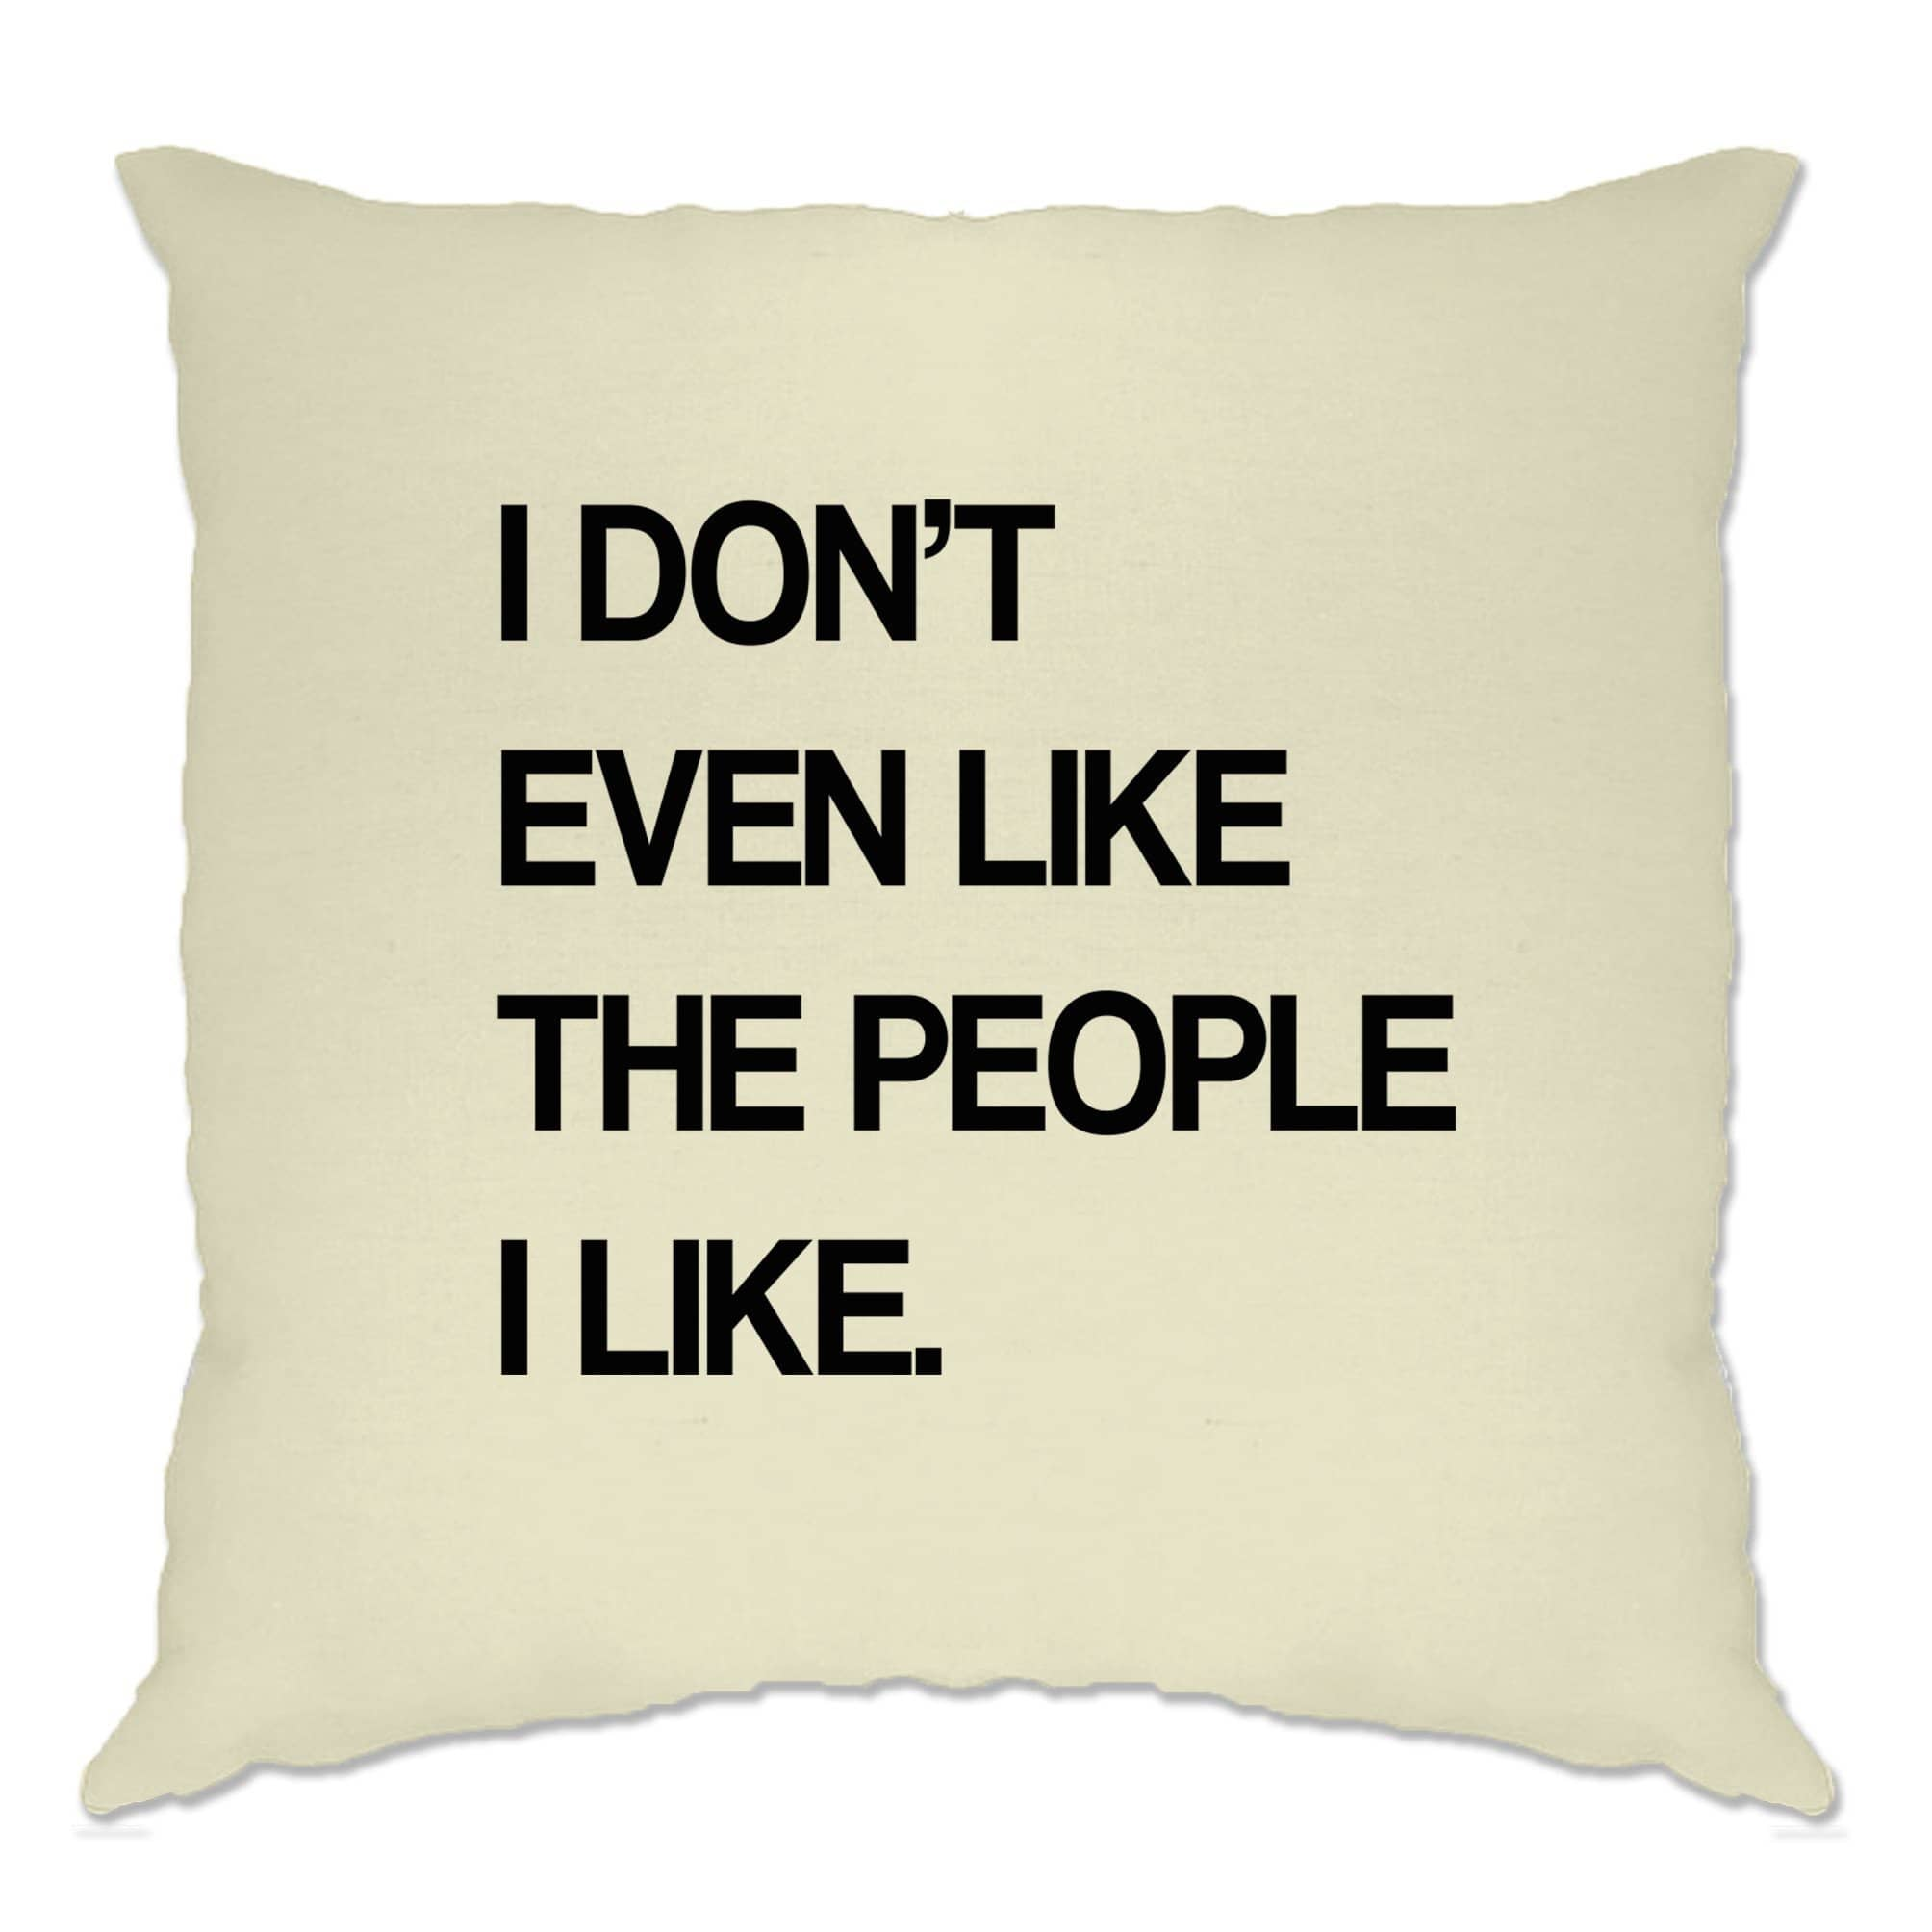 Joke Cushion Cover I Don't Even Like The People I Like